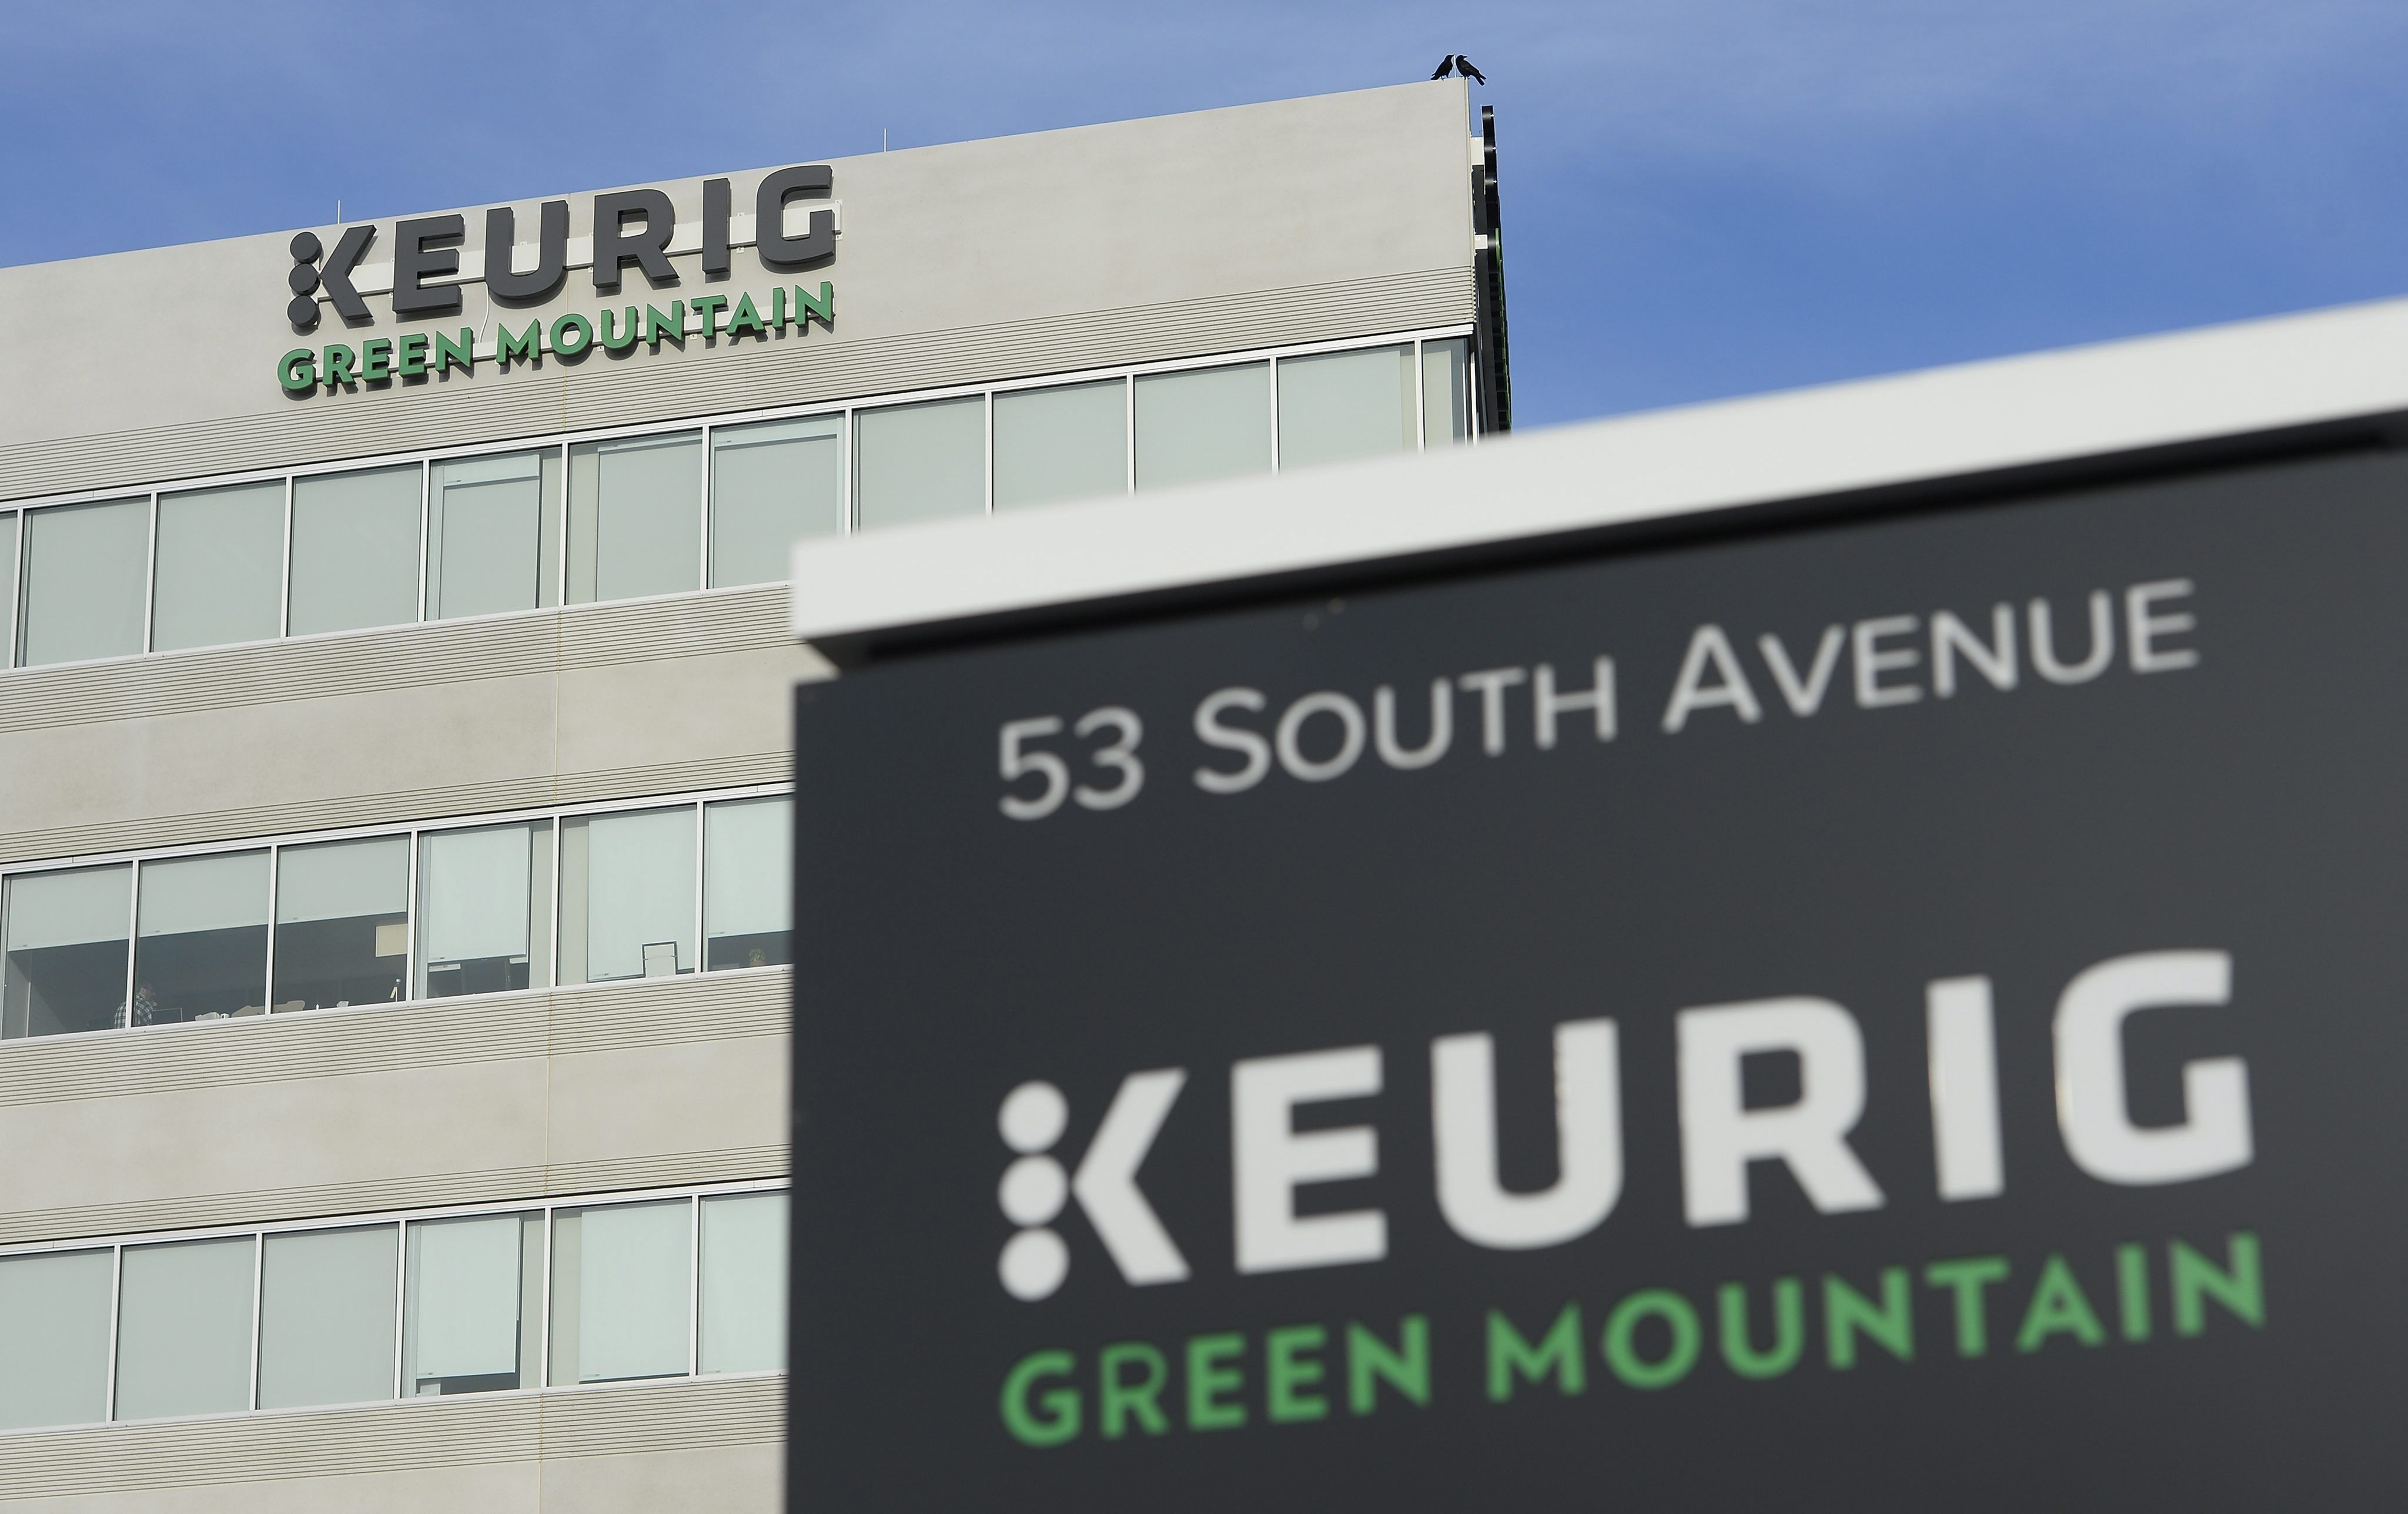 Keurig Green Mountain to be acquired by European family for $13.9billion - The Washington Post 20151207